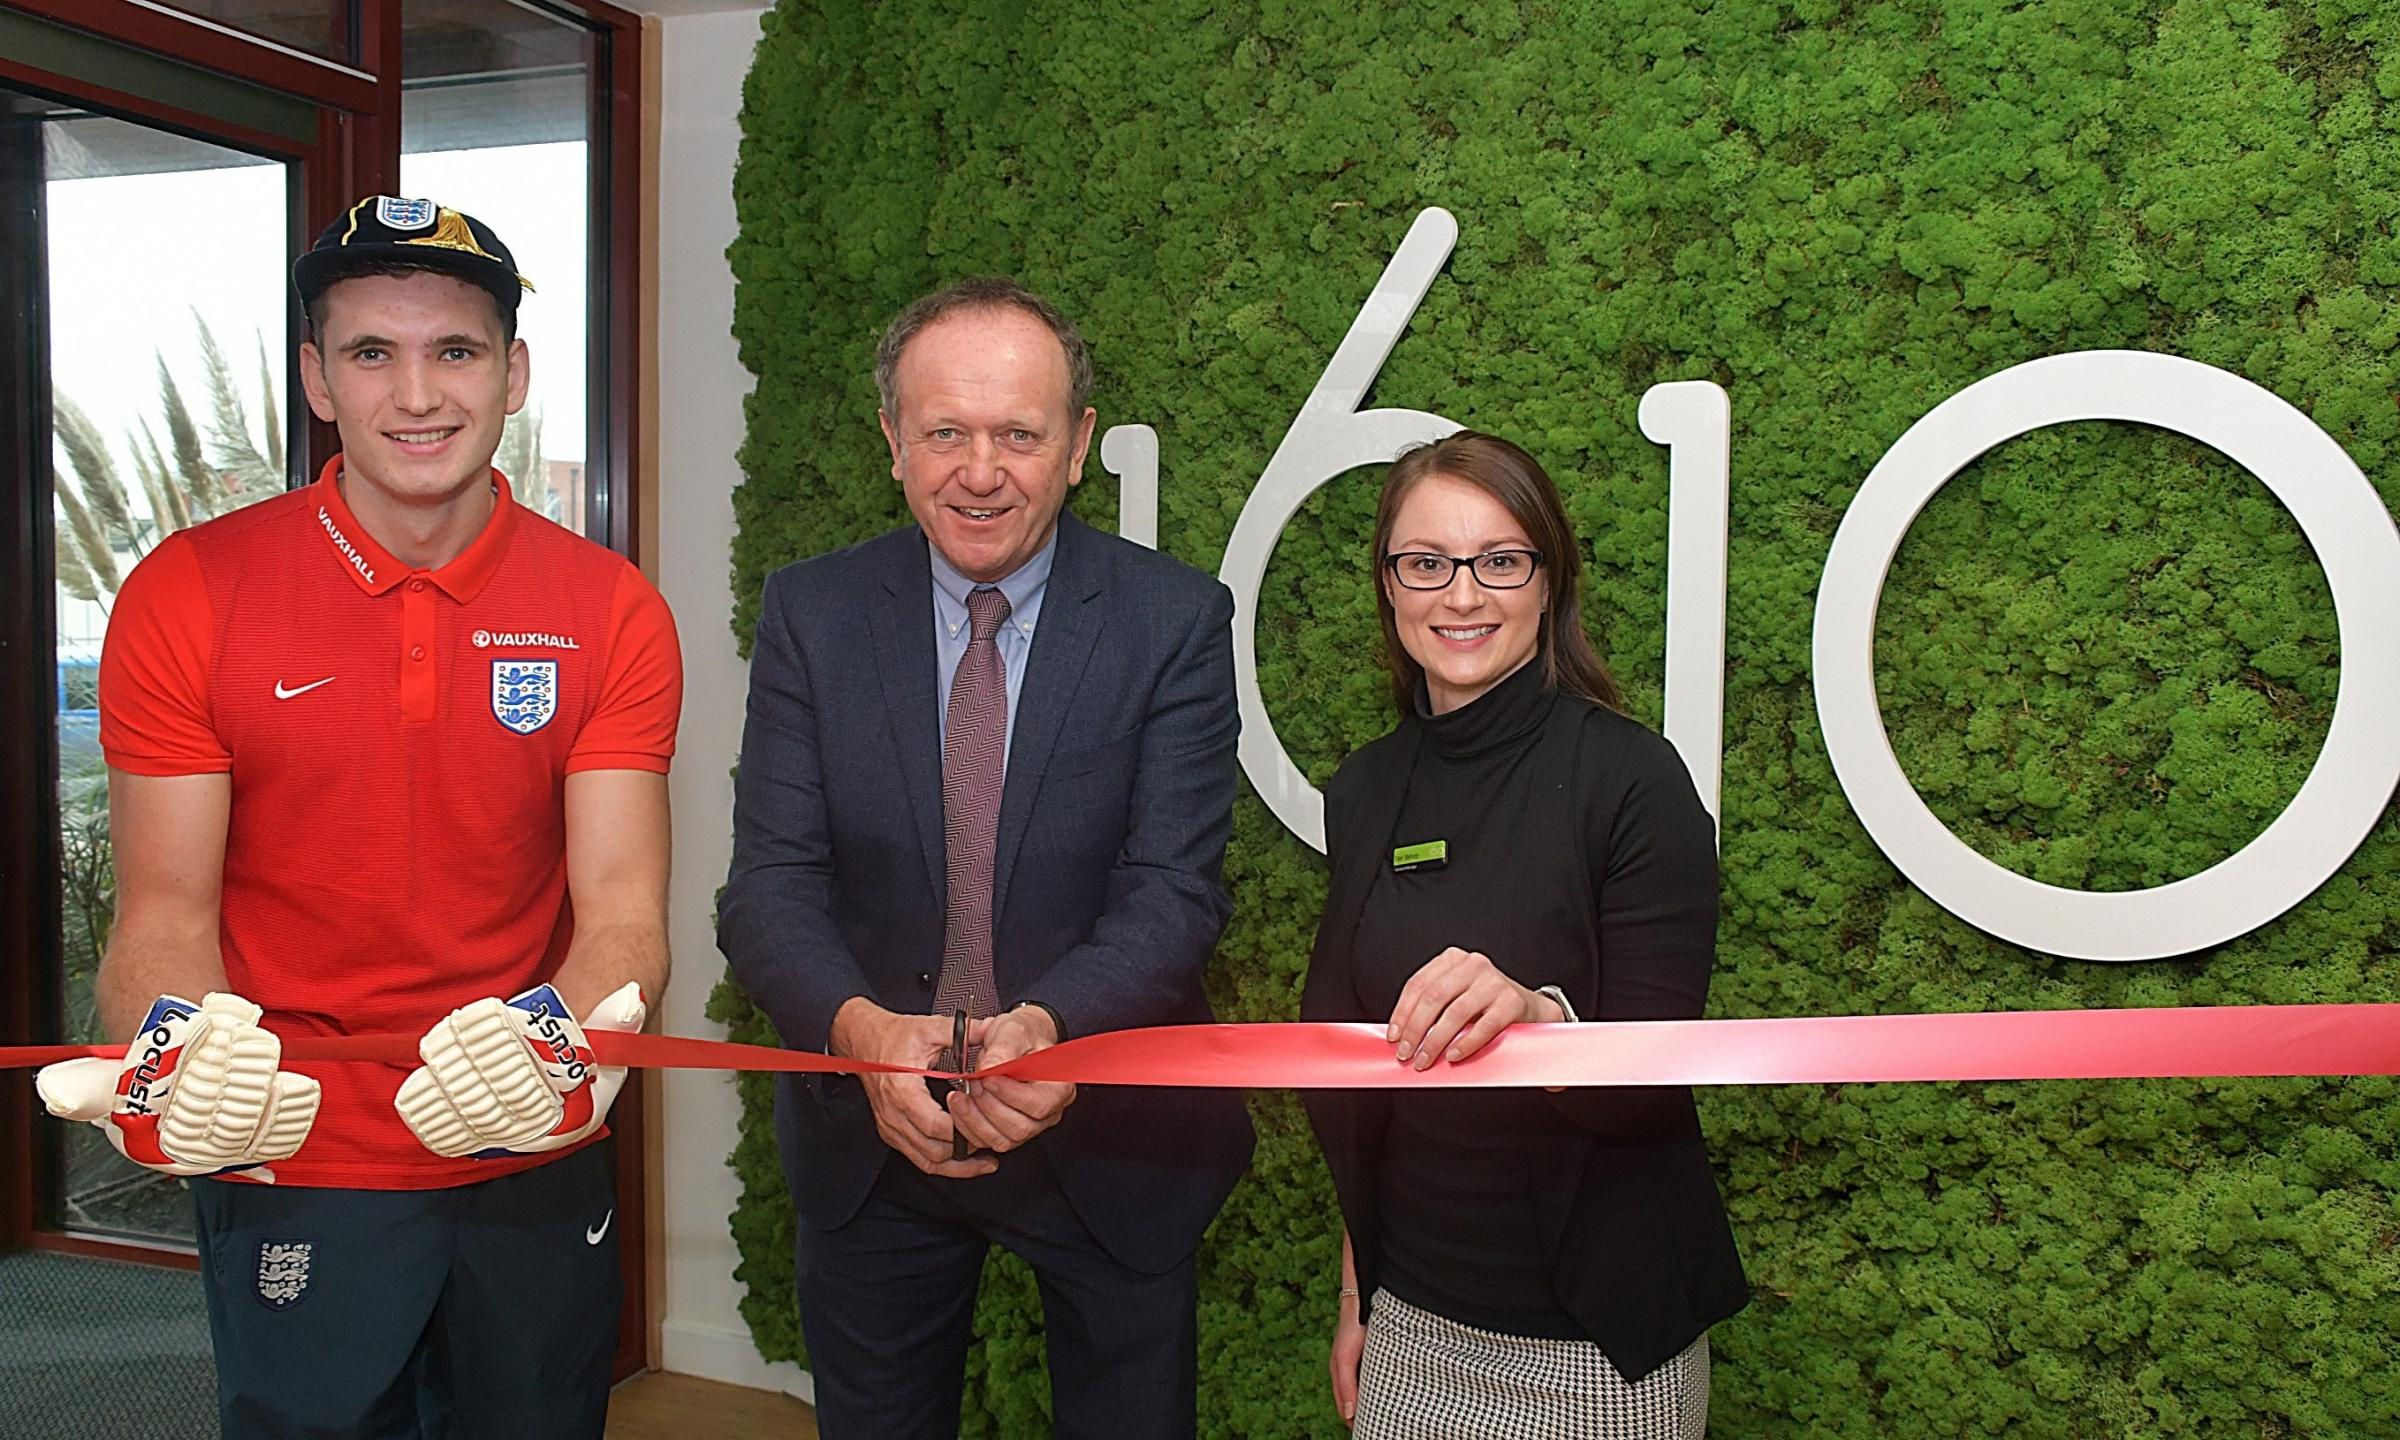 Paralympian Footballer Giles Moore ( pictured left)officially opens the new facilities at 1610 Chard with CEO of 1610 Tim Nightingale (centre) and 1610 Chard Manager Trish Bishop.